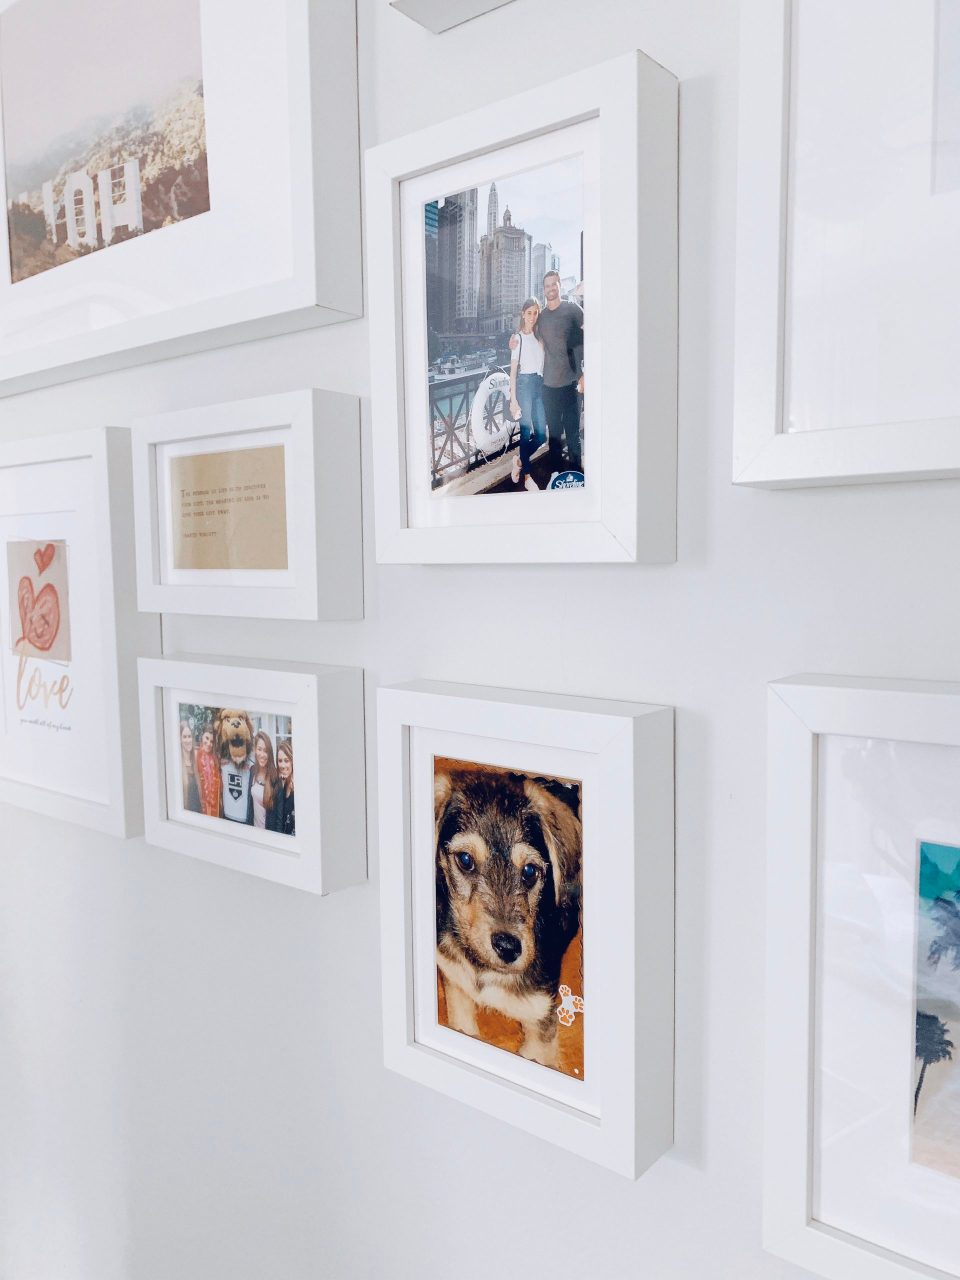 How to organize your bedroom and create a gallery wall